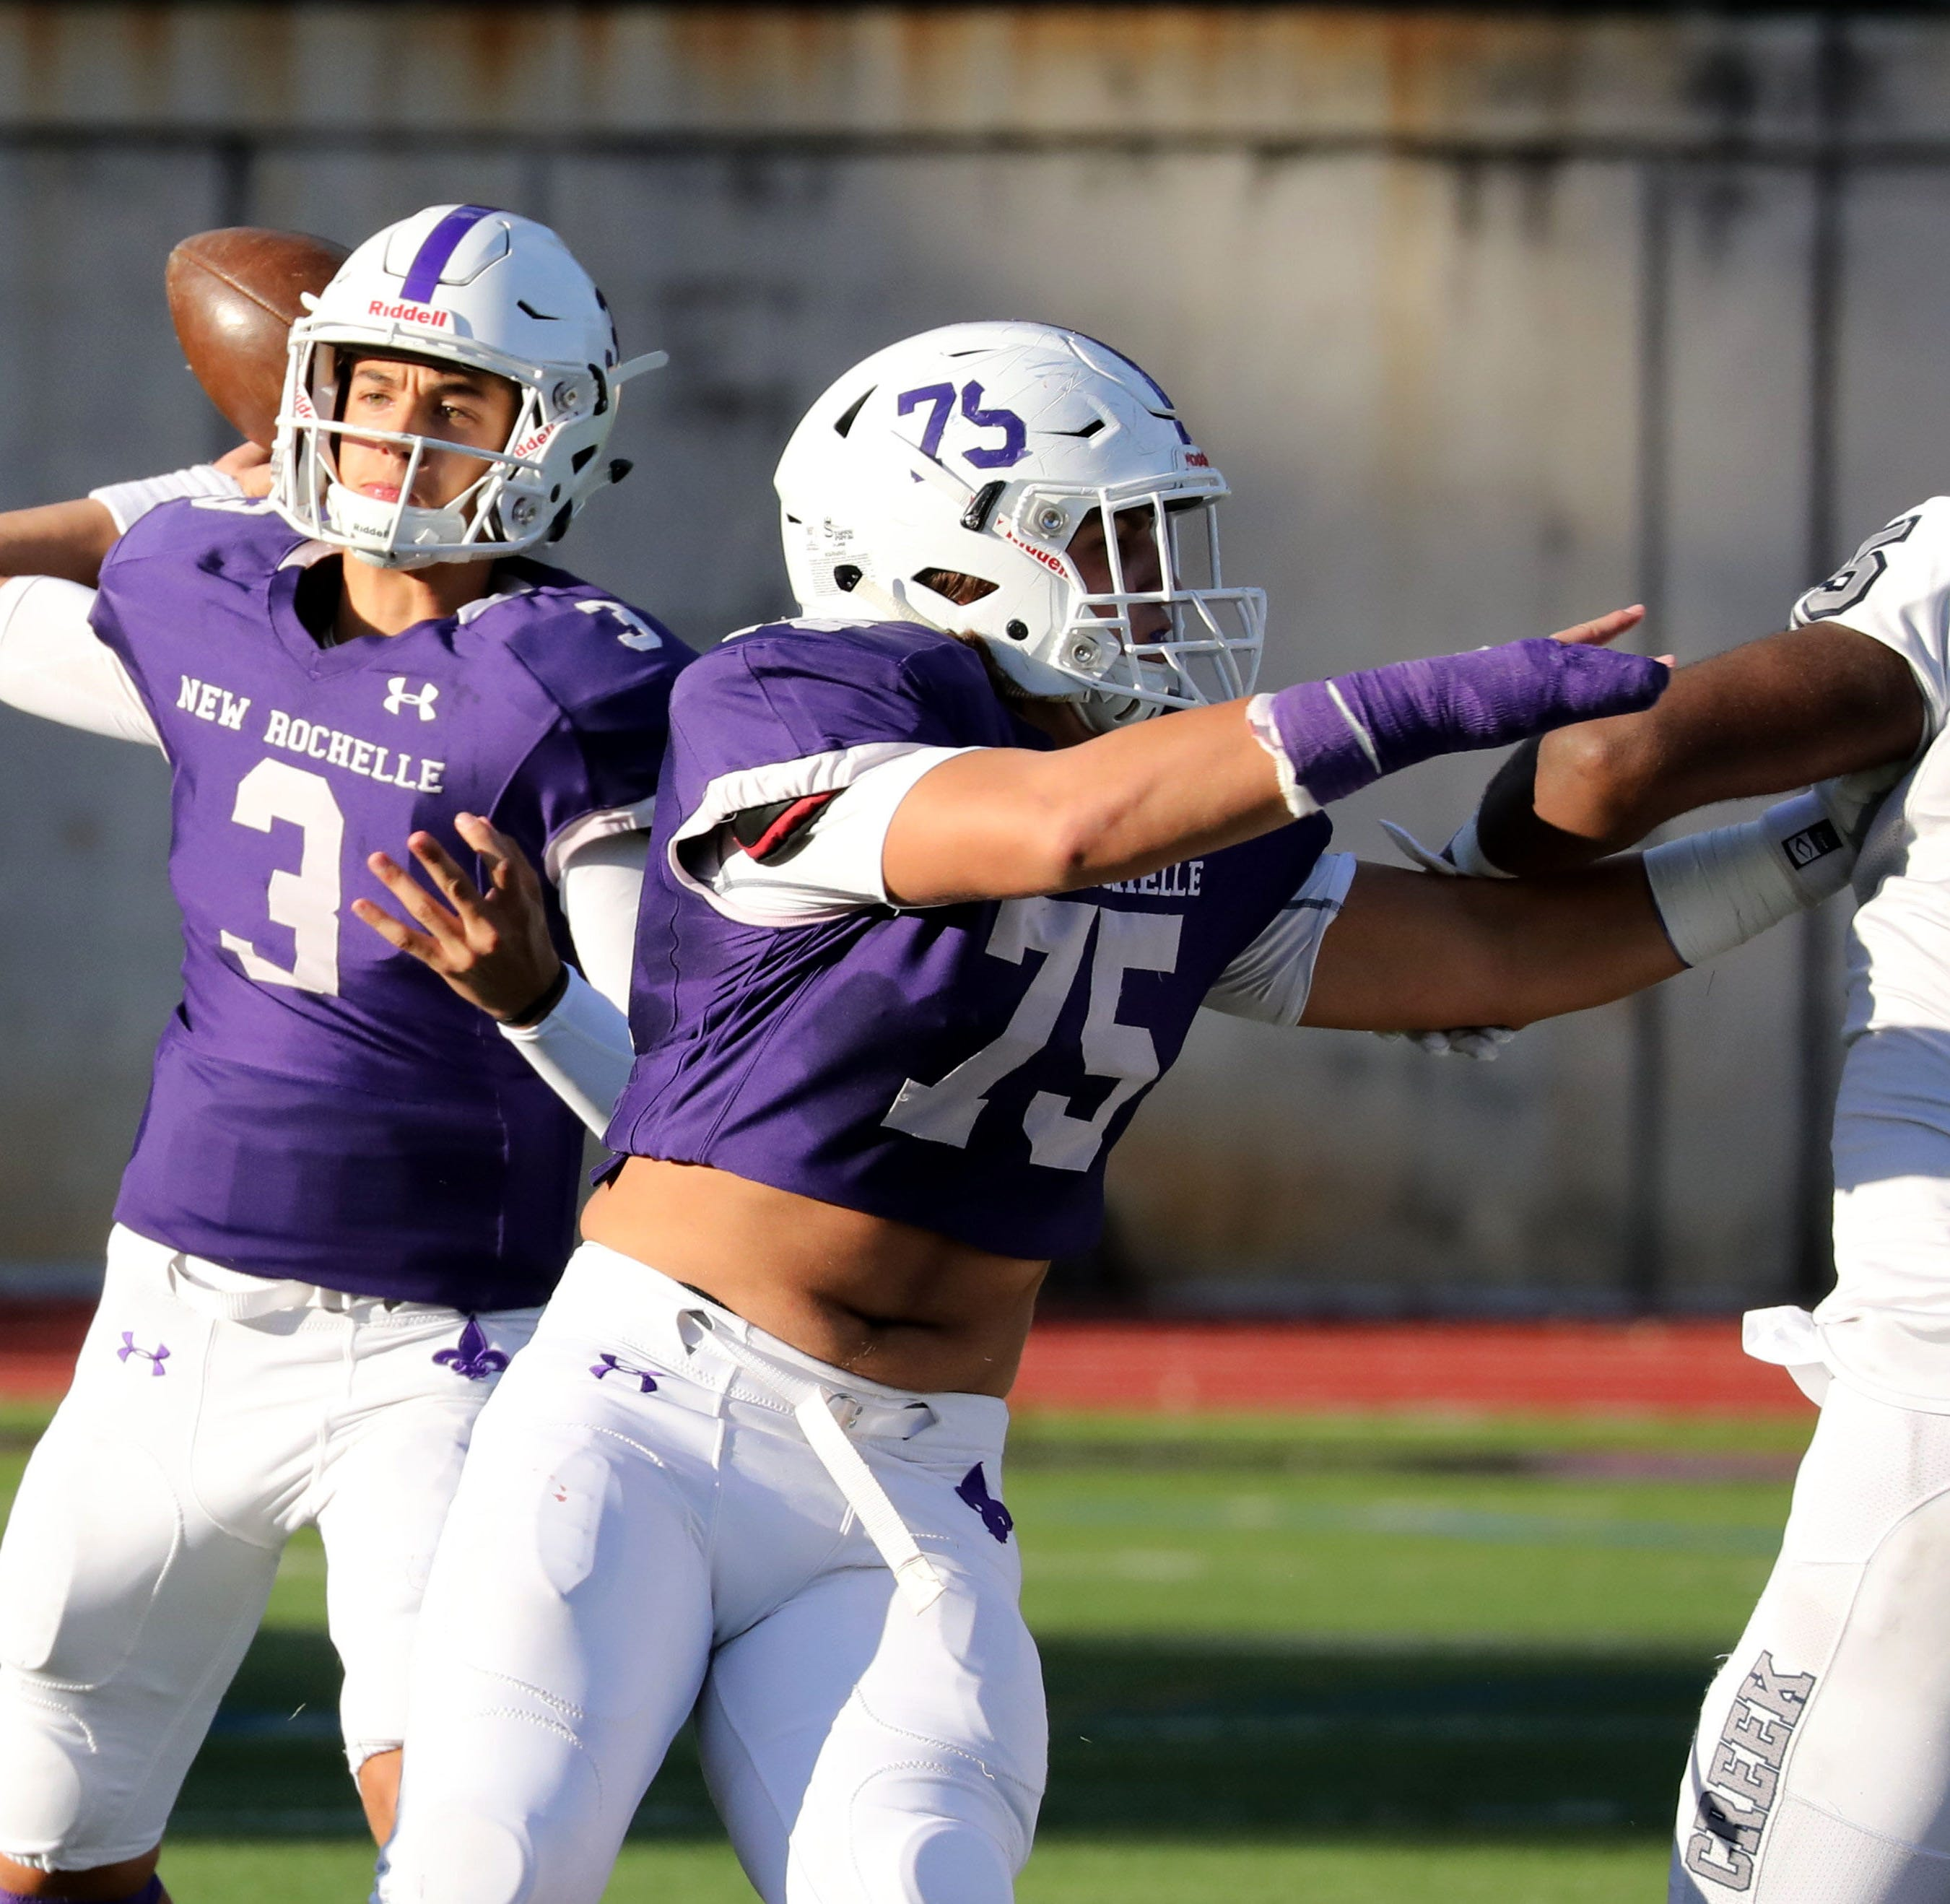 Thomson: Hardware in Section 1's football forecast for New Rochelle, Clarkstown South